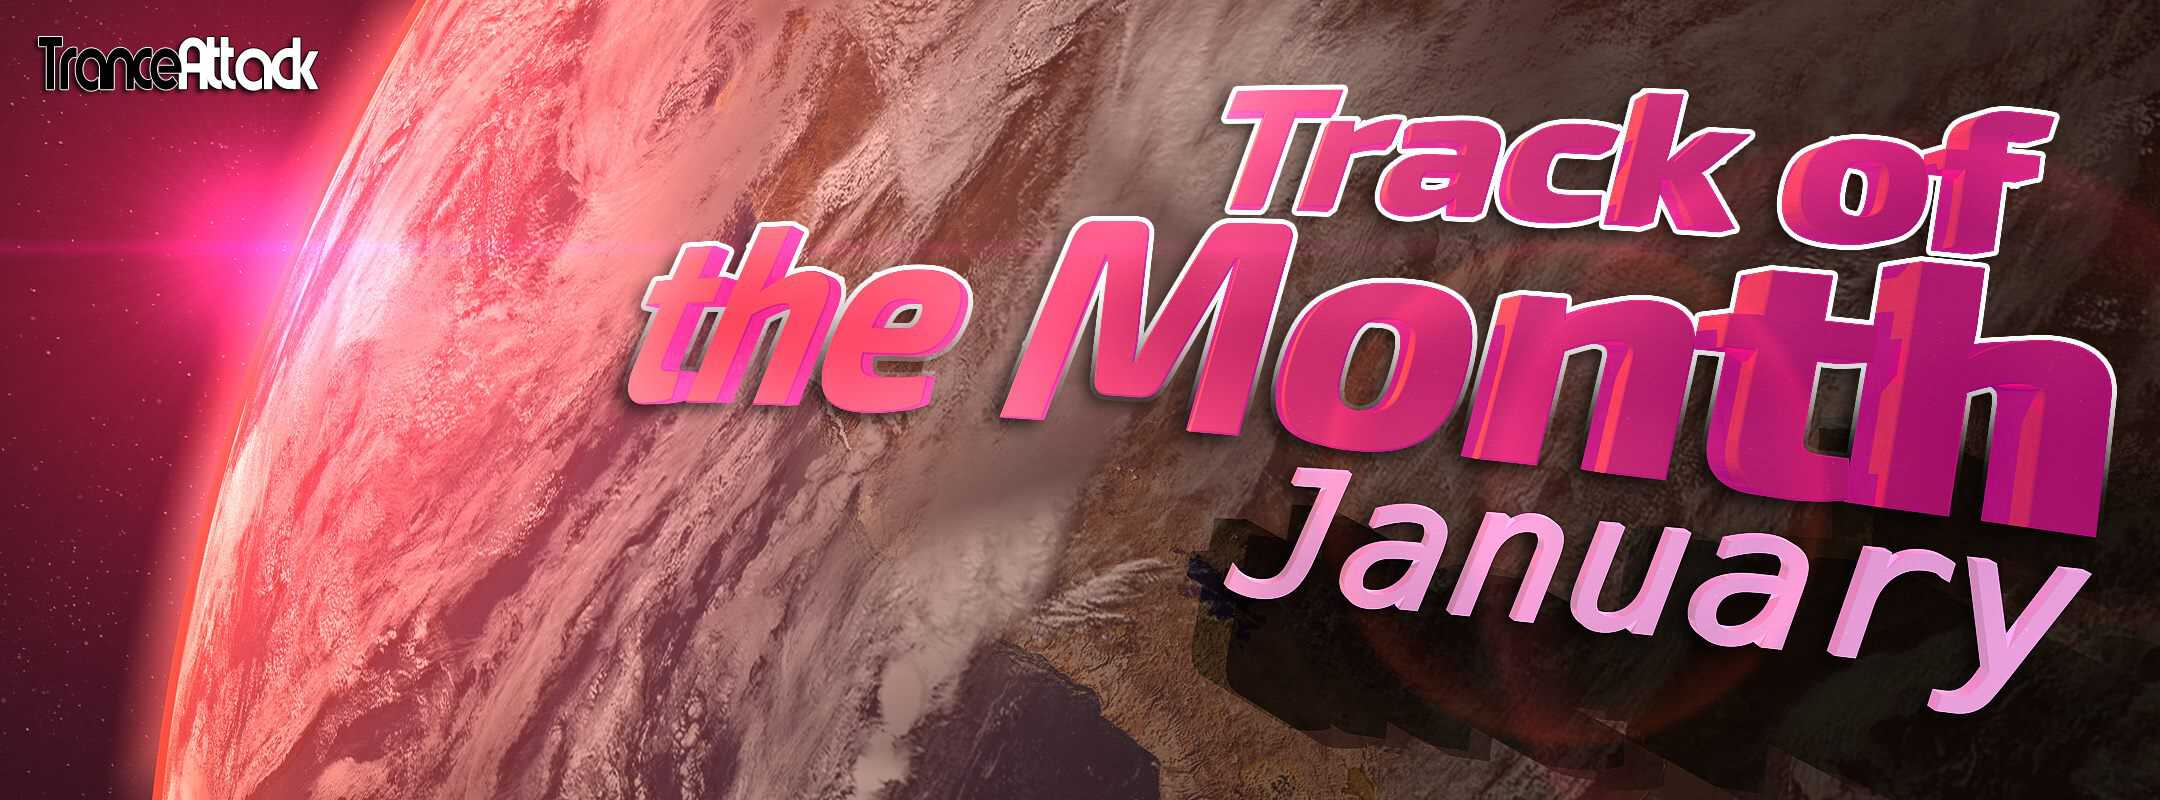 Voting: Track Of The Month January 2018